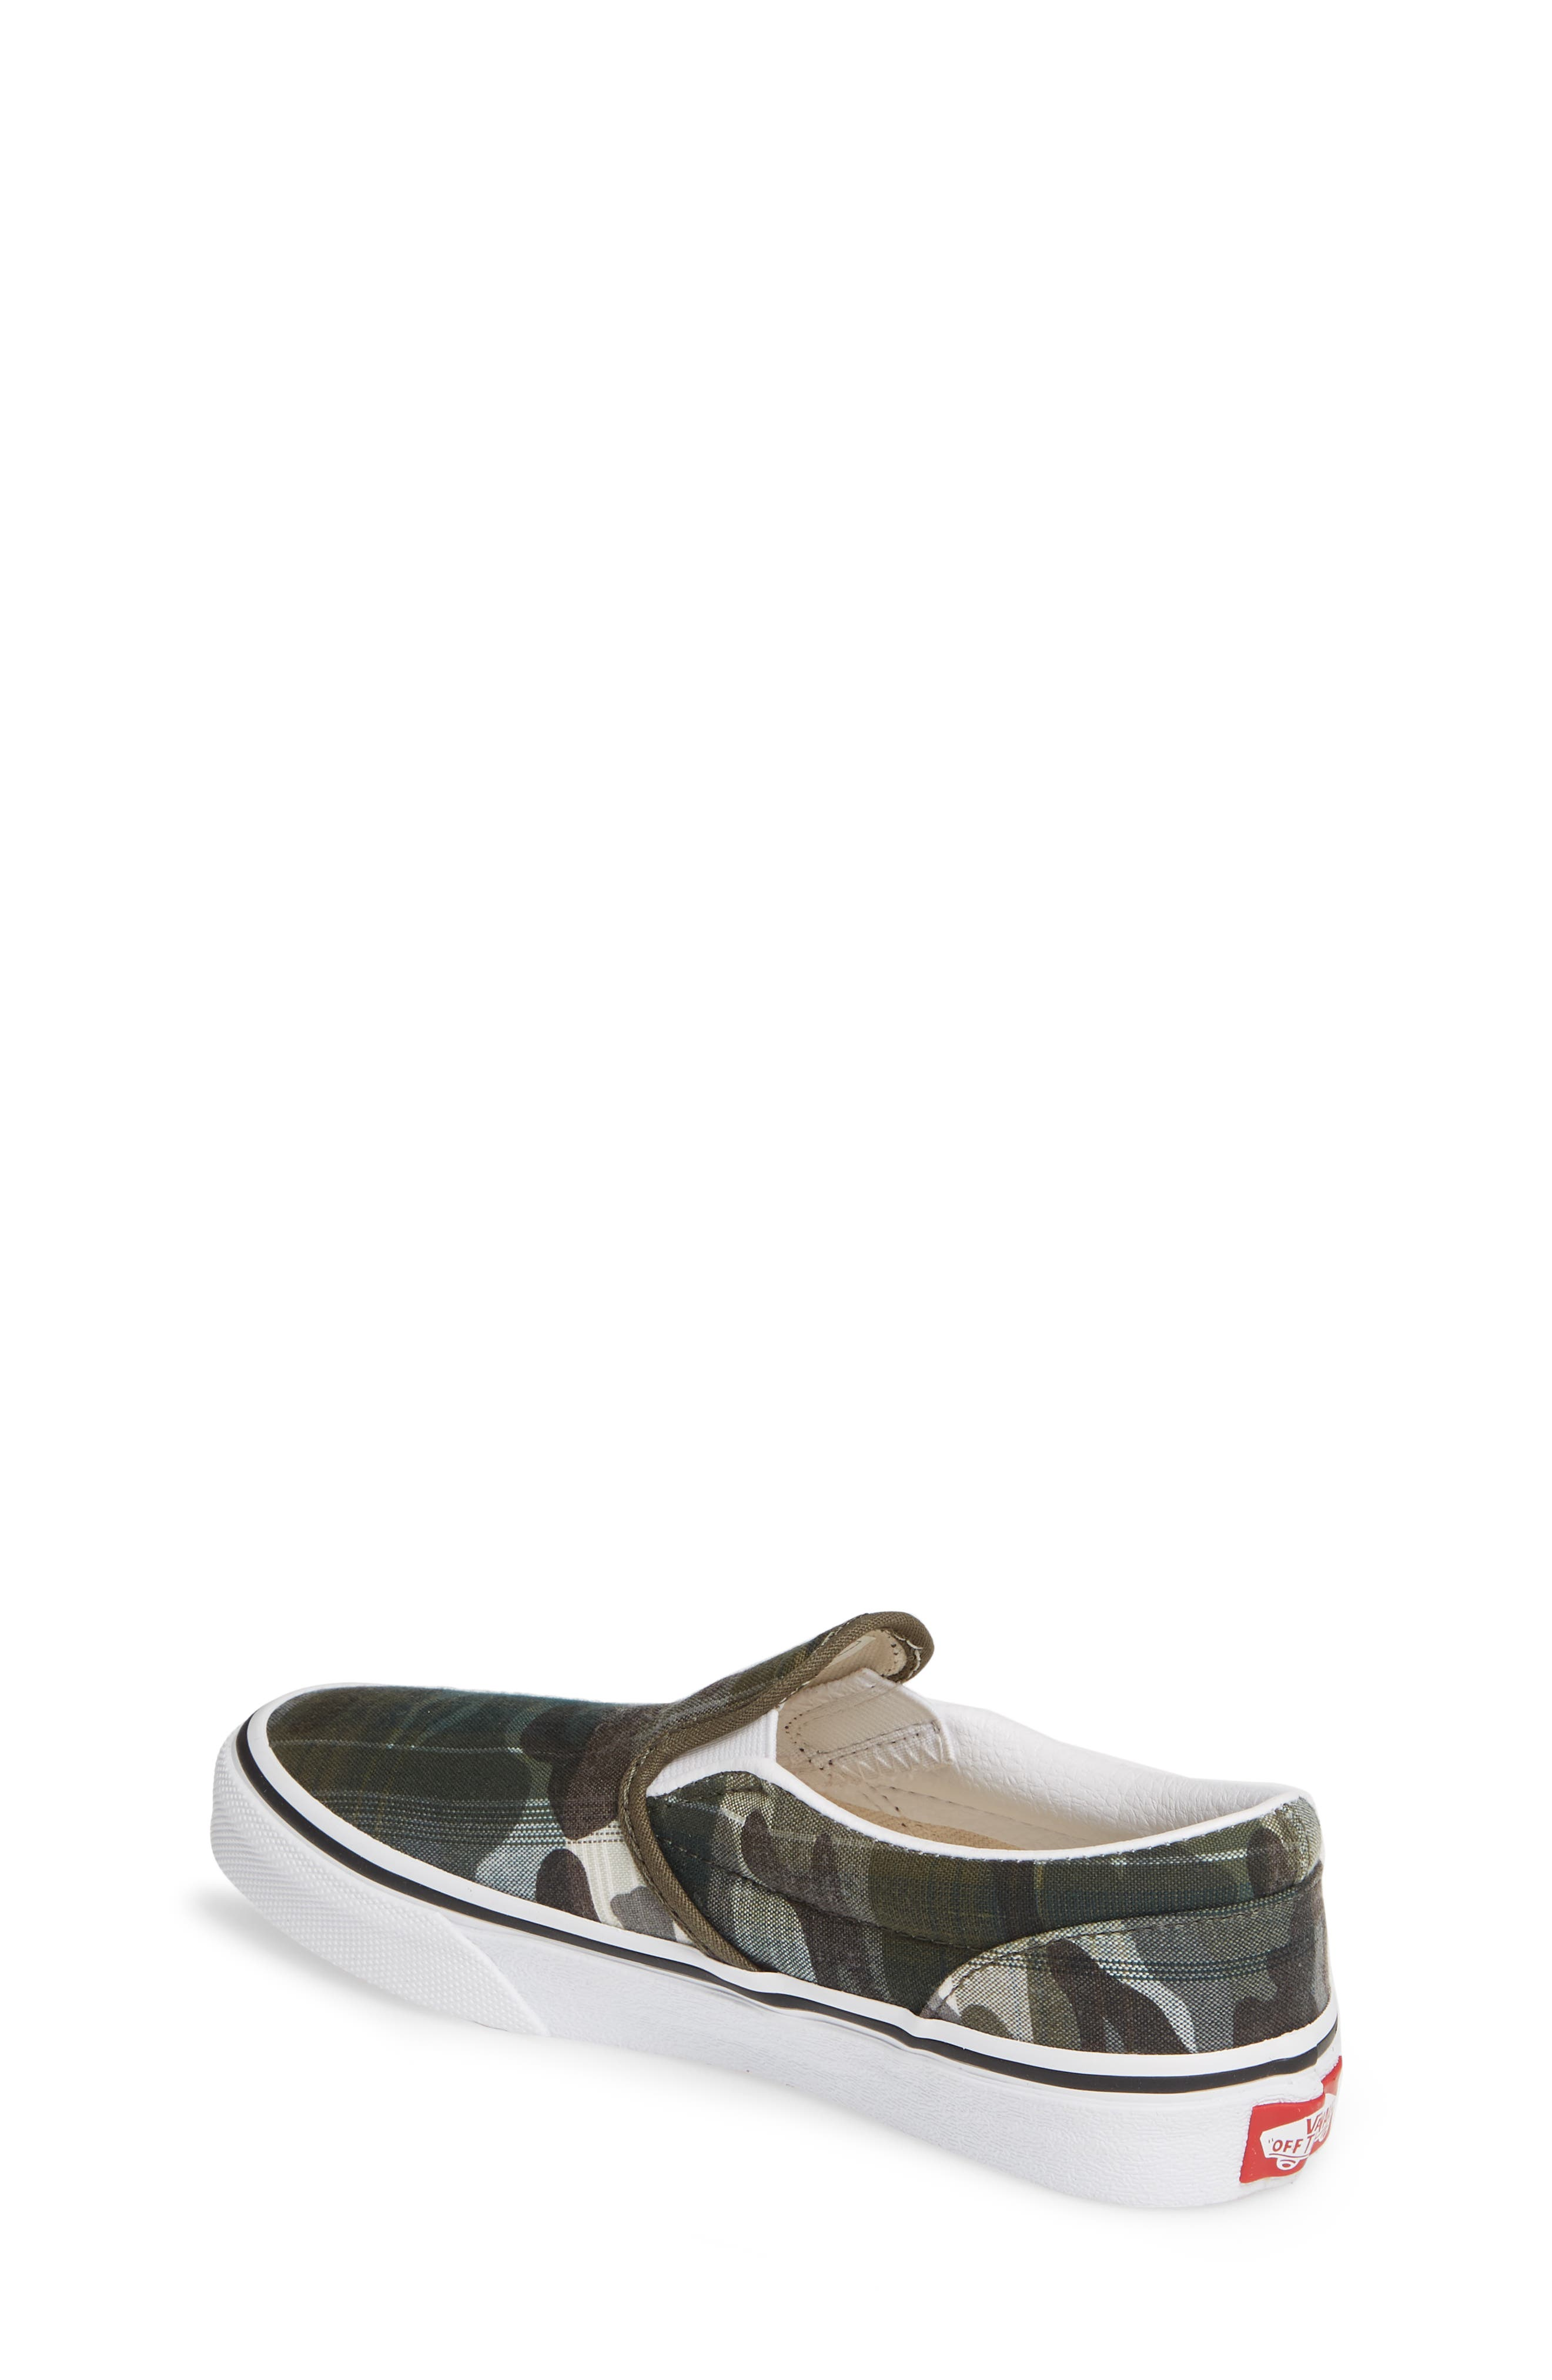 VANS, 'Classic' Slip-On, Alternate thumbnail 2, color, PLAID CAMO GRAPE LEAF/ WHITE